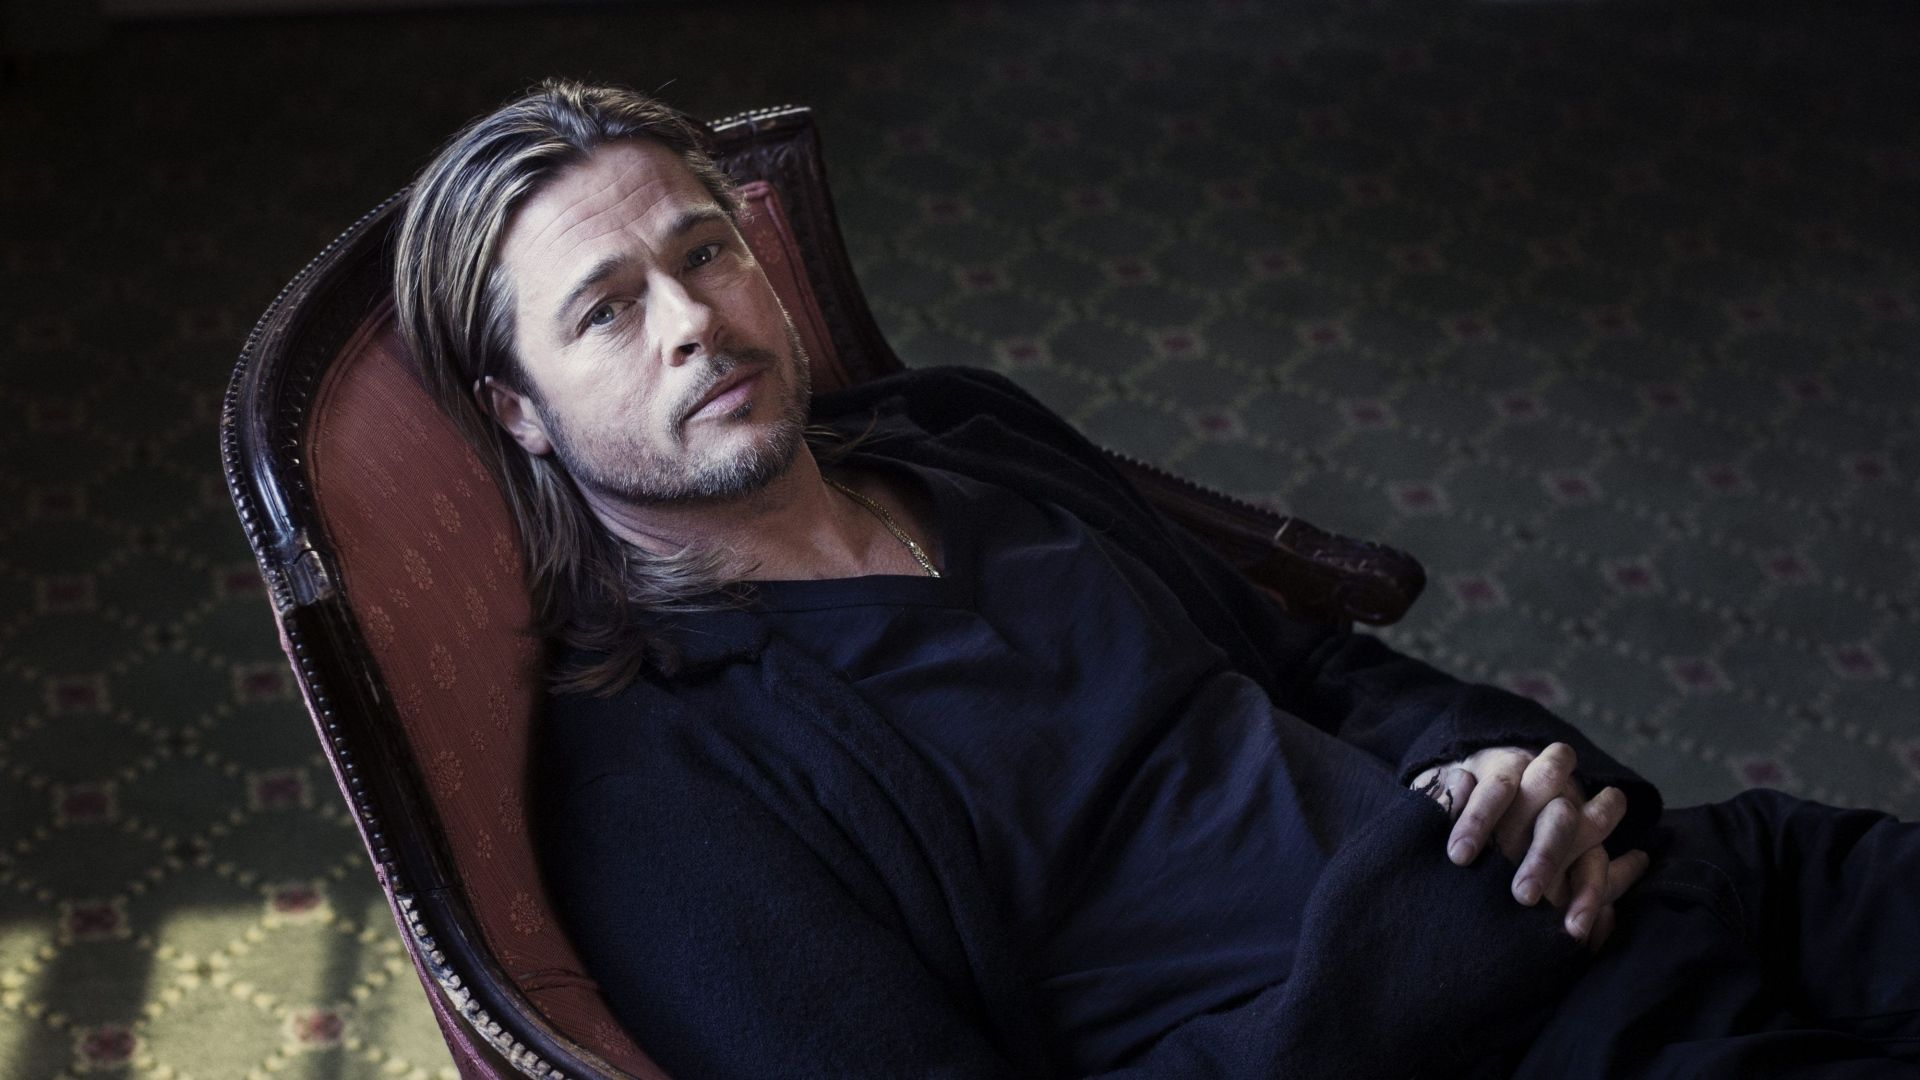 Image Result For Brad Pitt Wallpaper